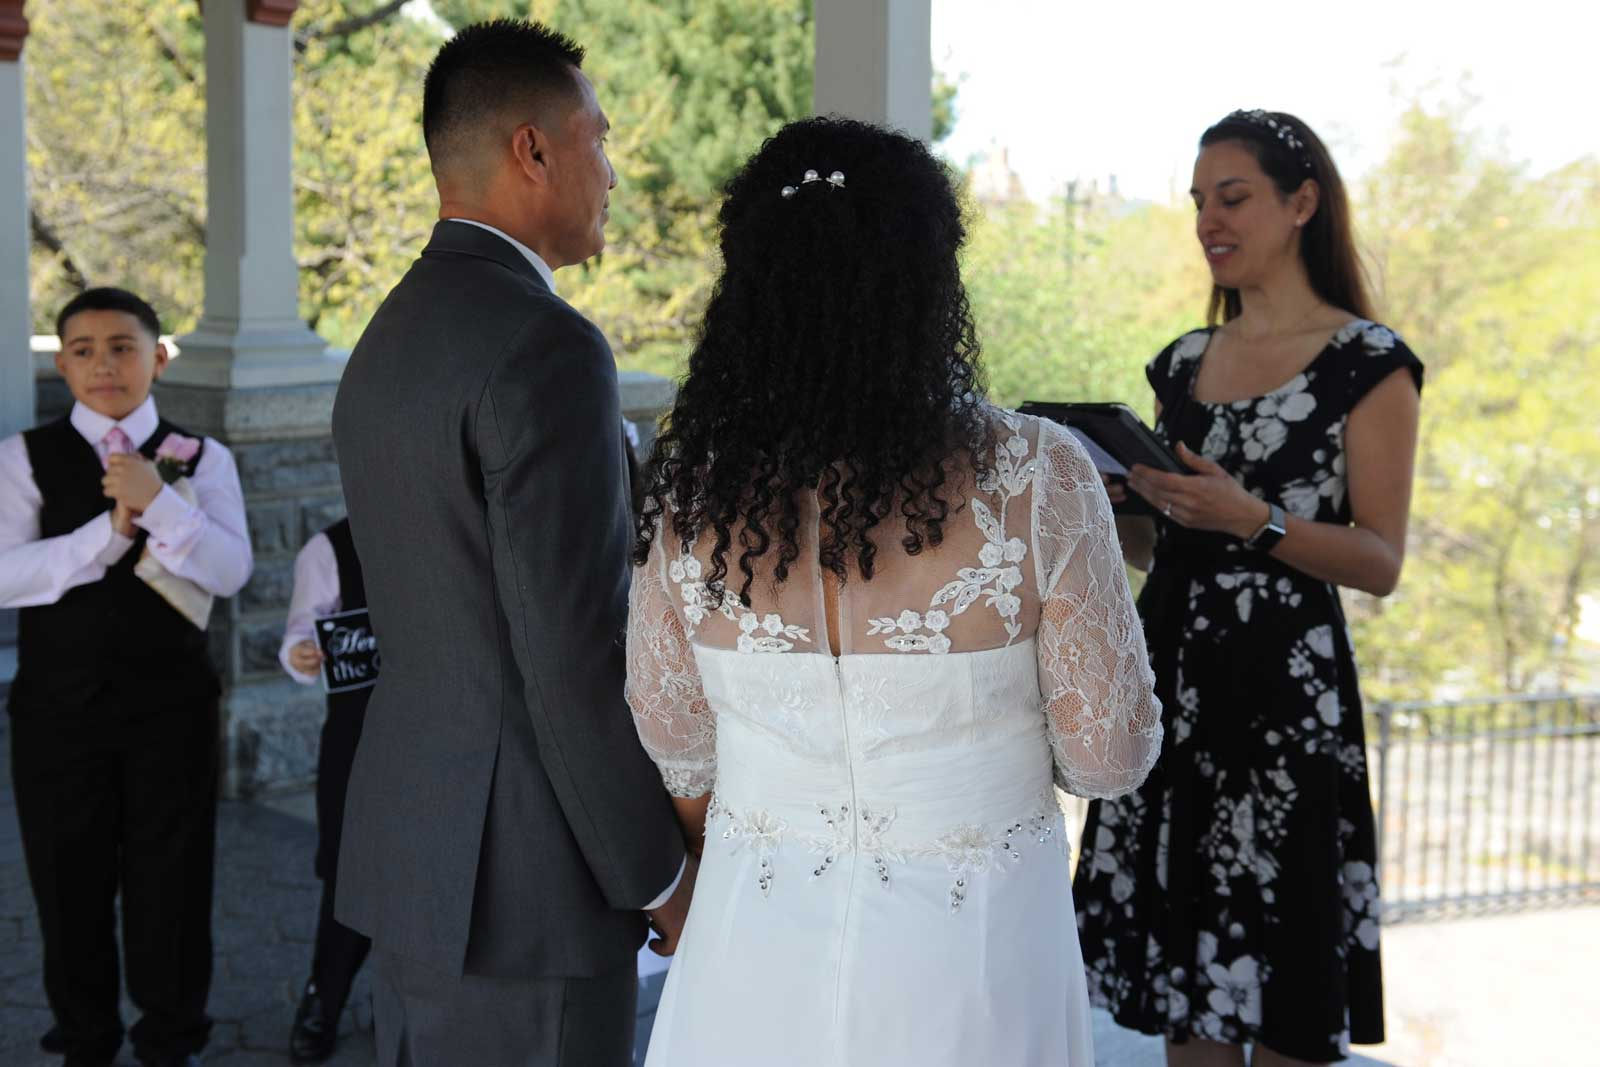 Wedding Ceremony in Spanish with Wedding Solution